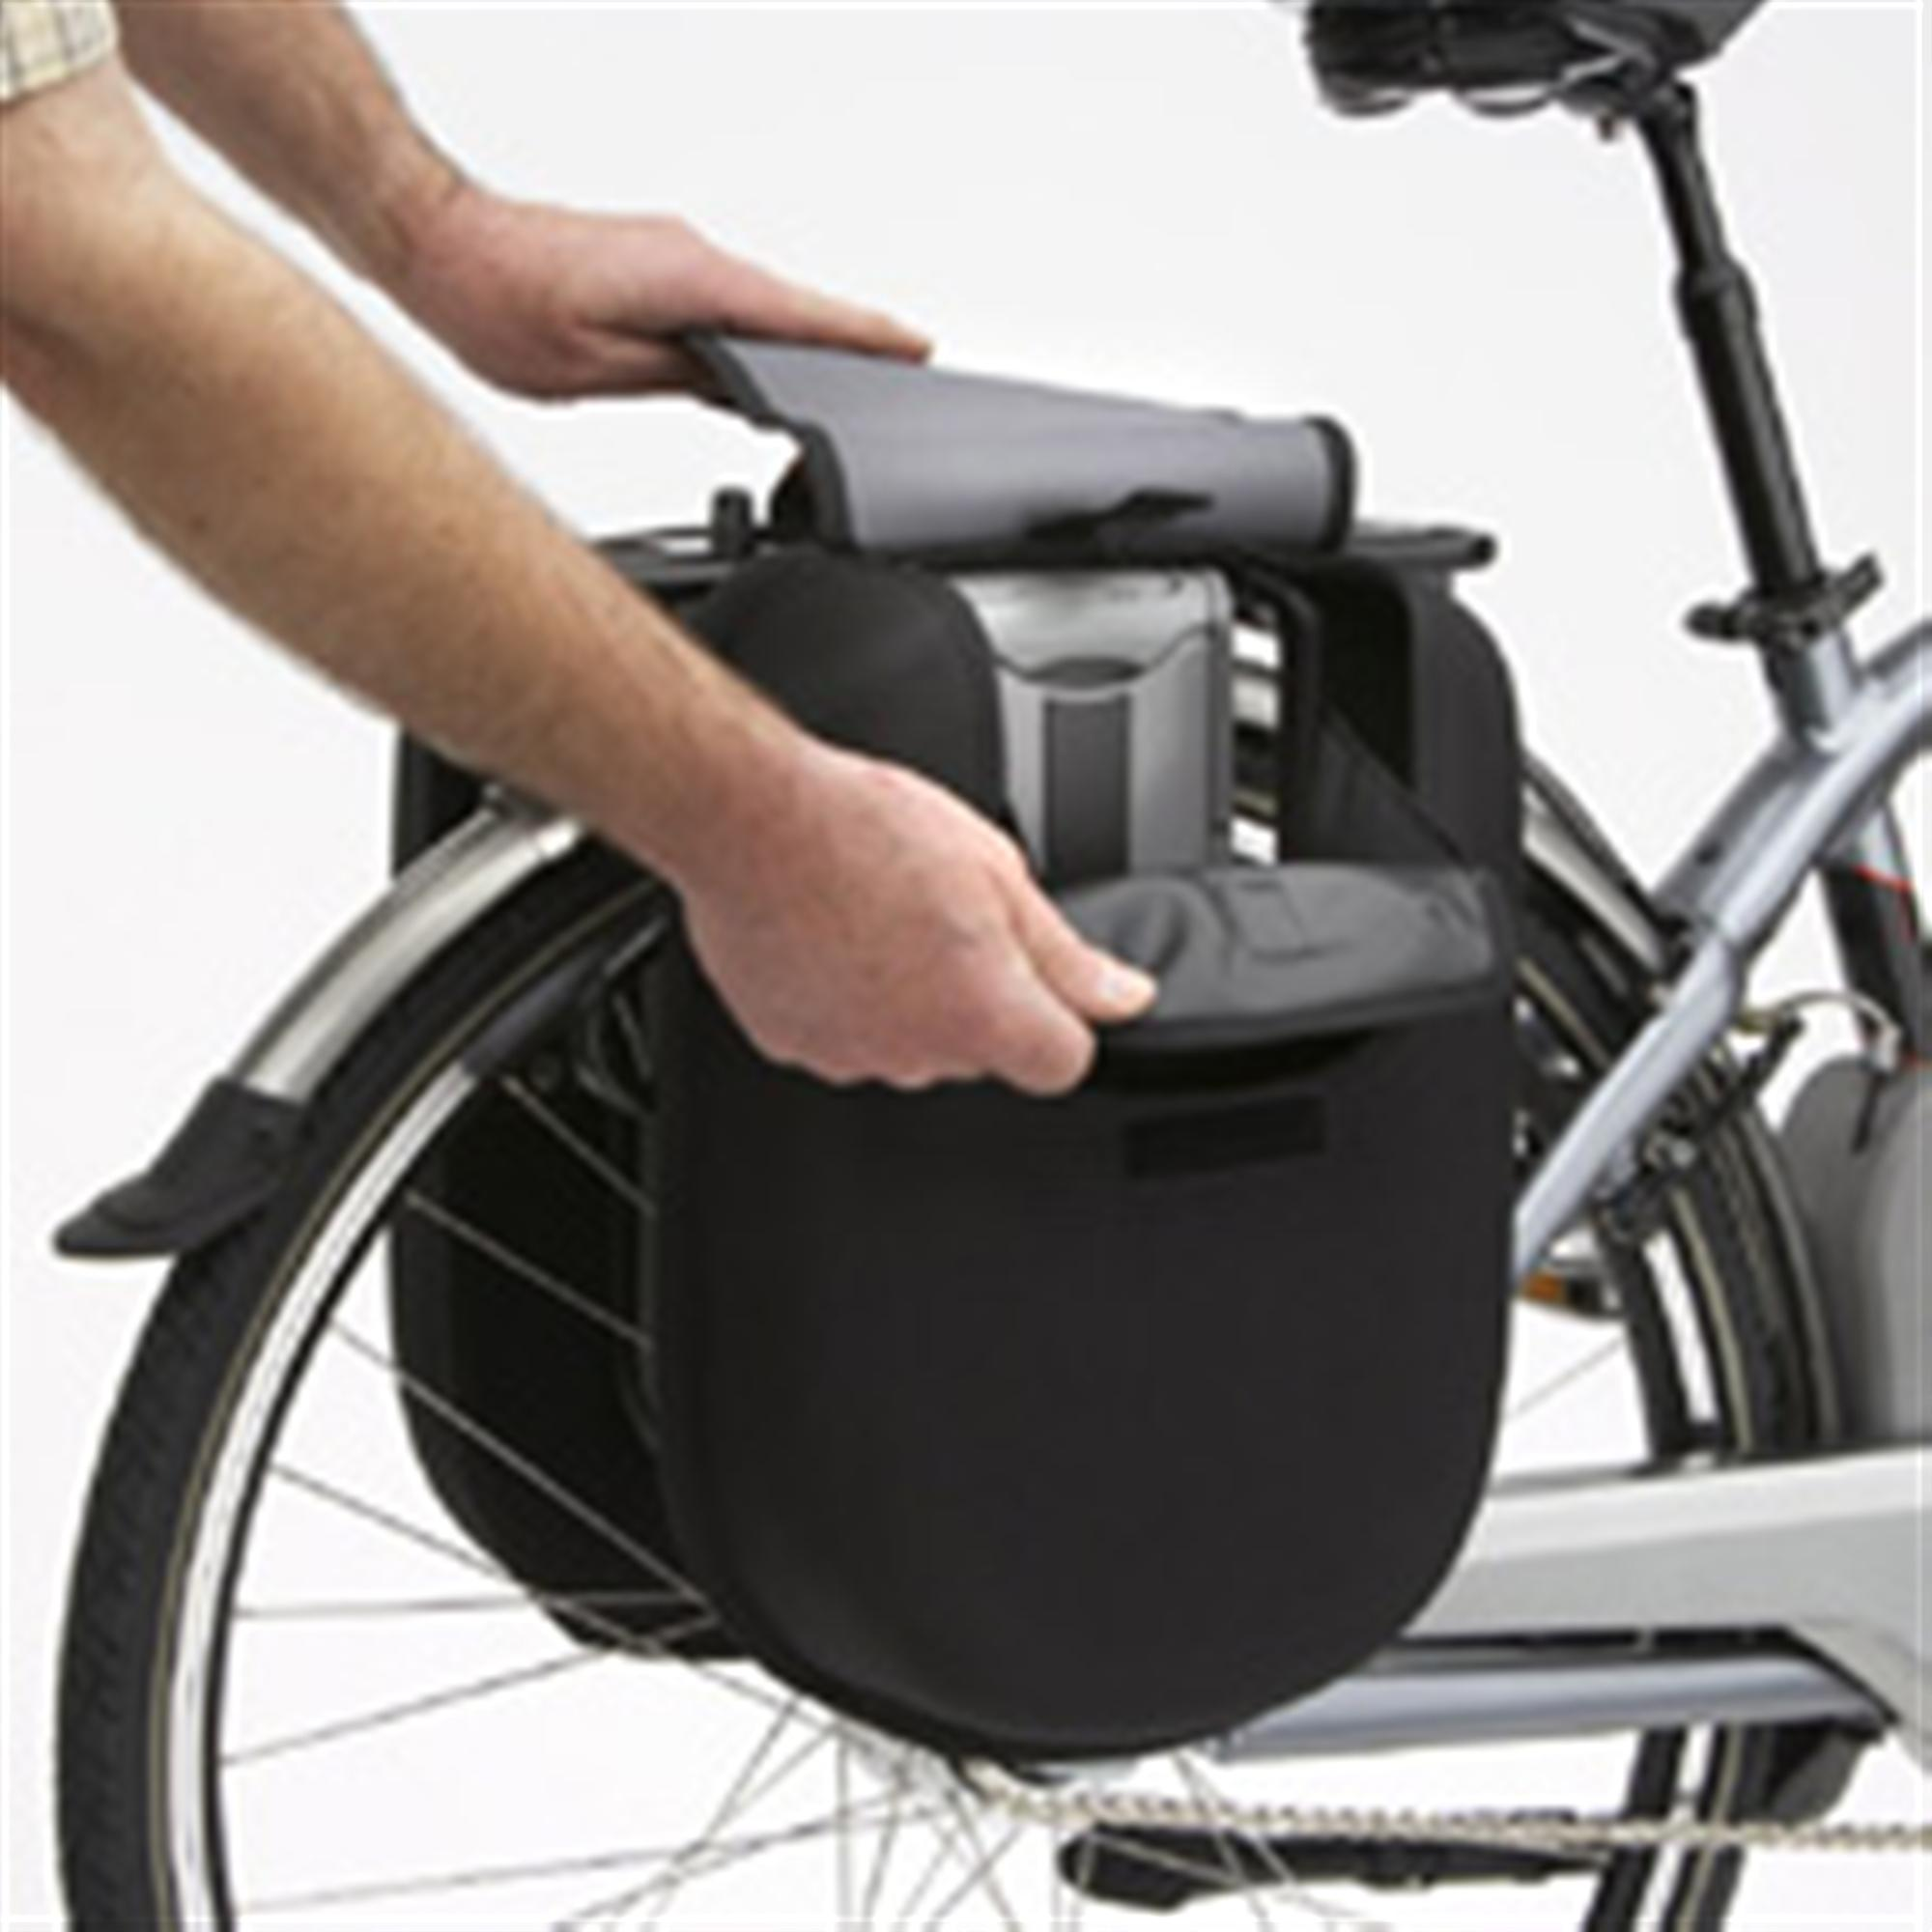 Giant electric Bike Repair Manual reviews